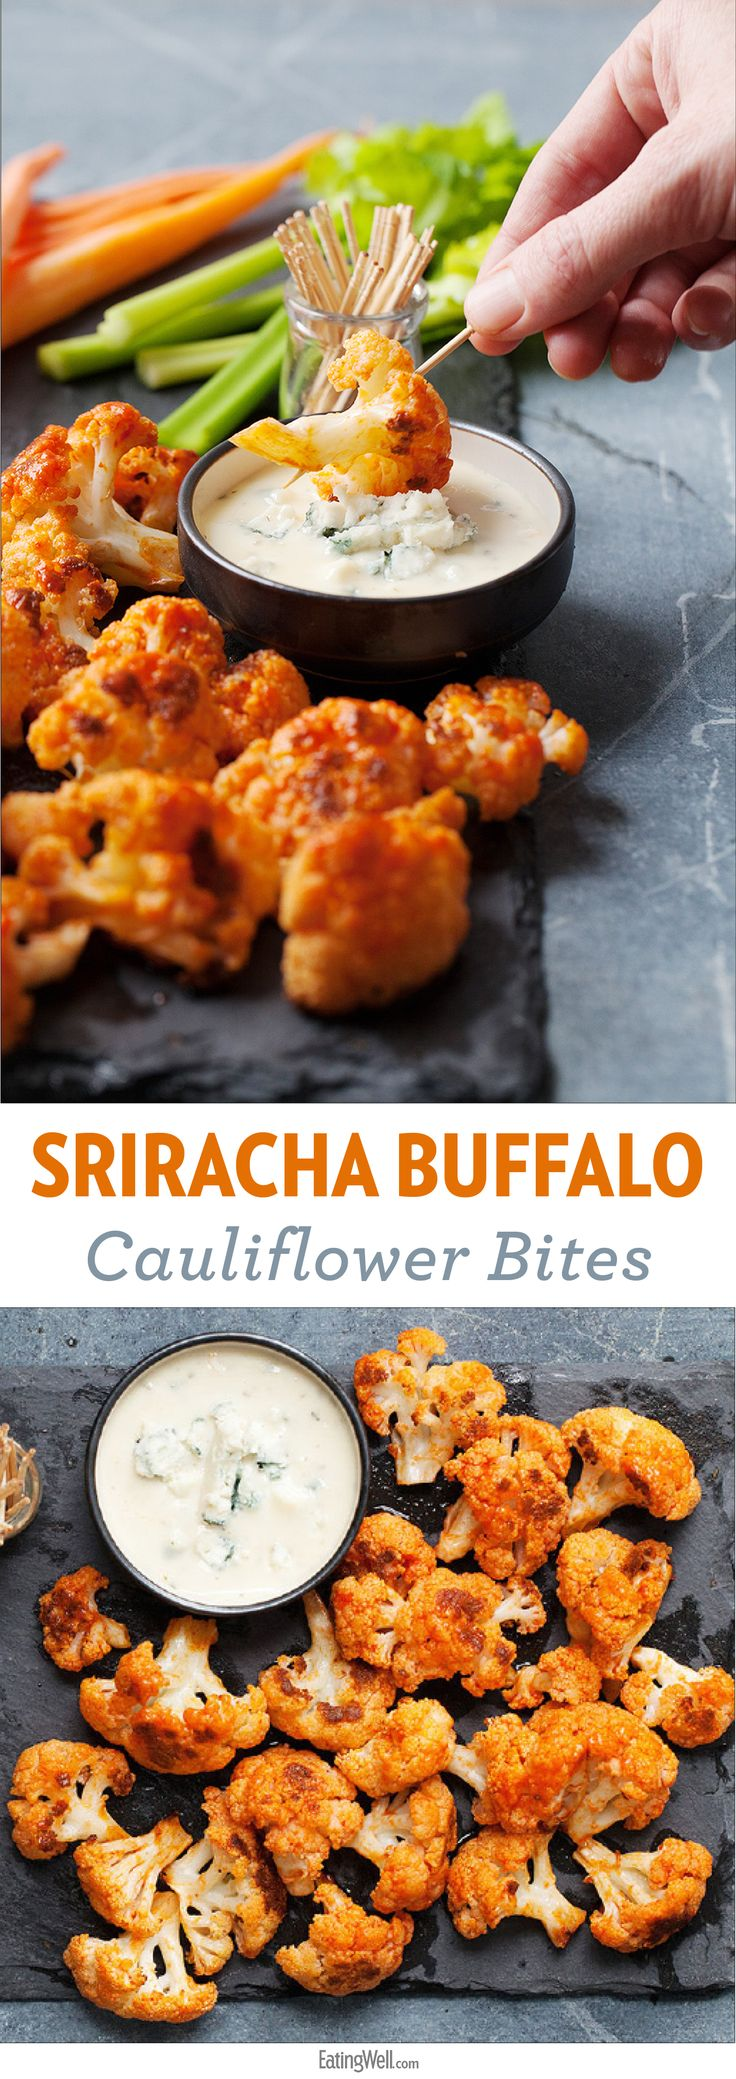 his recipe for spicy Buffalo cauliflower bites is a great vegetarian alternative to Buffalo wings. Roasted cauliflower stands in for chicken and provides more fiber and fewer calories. Serve this easy appetizer with carrot sticks, celery and your favorite ranch or blue cheese dressing.